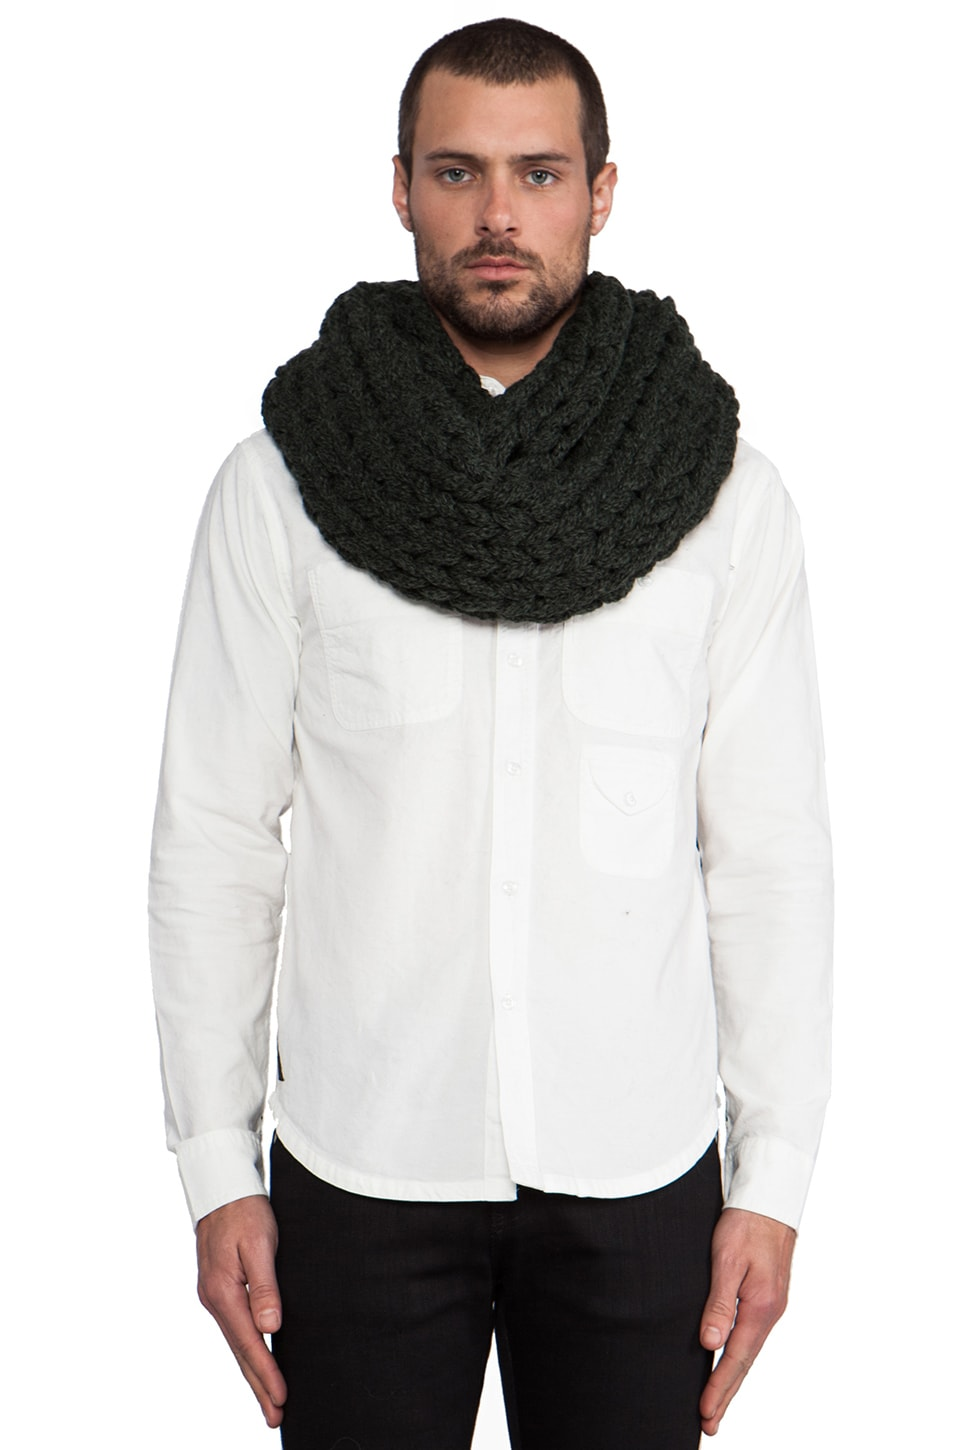 DE NADA Large Knit Infinity in Olive Mix